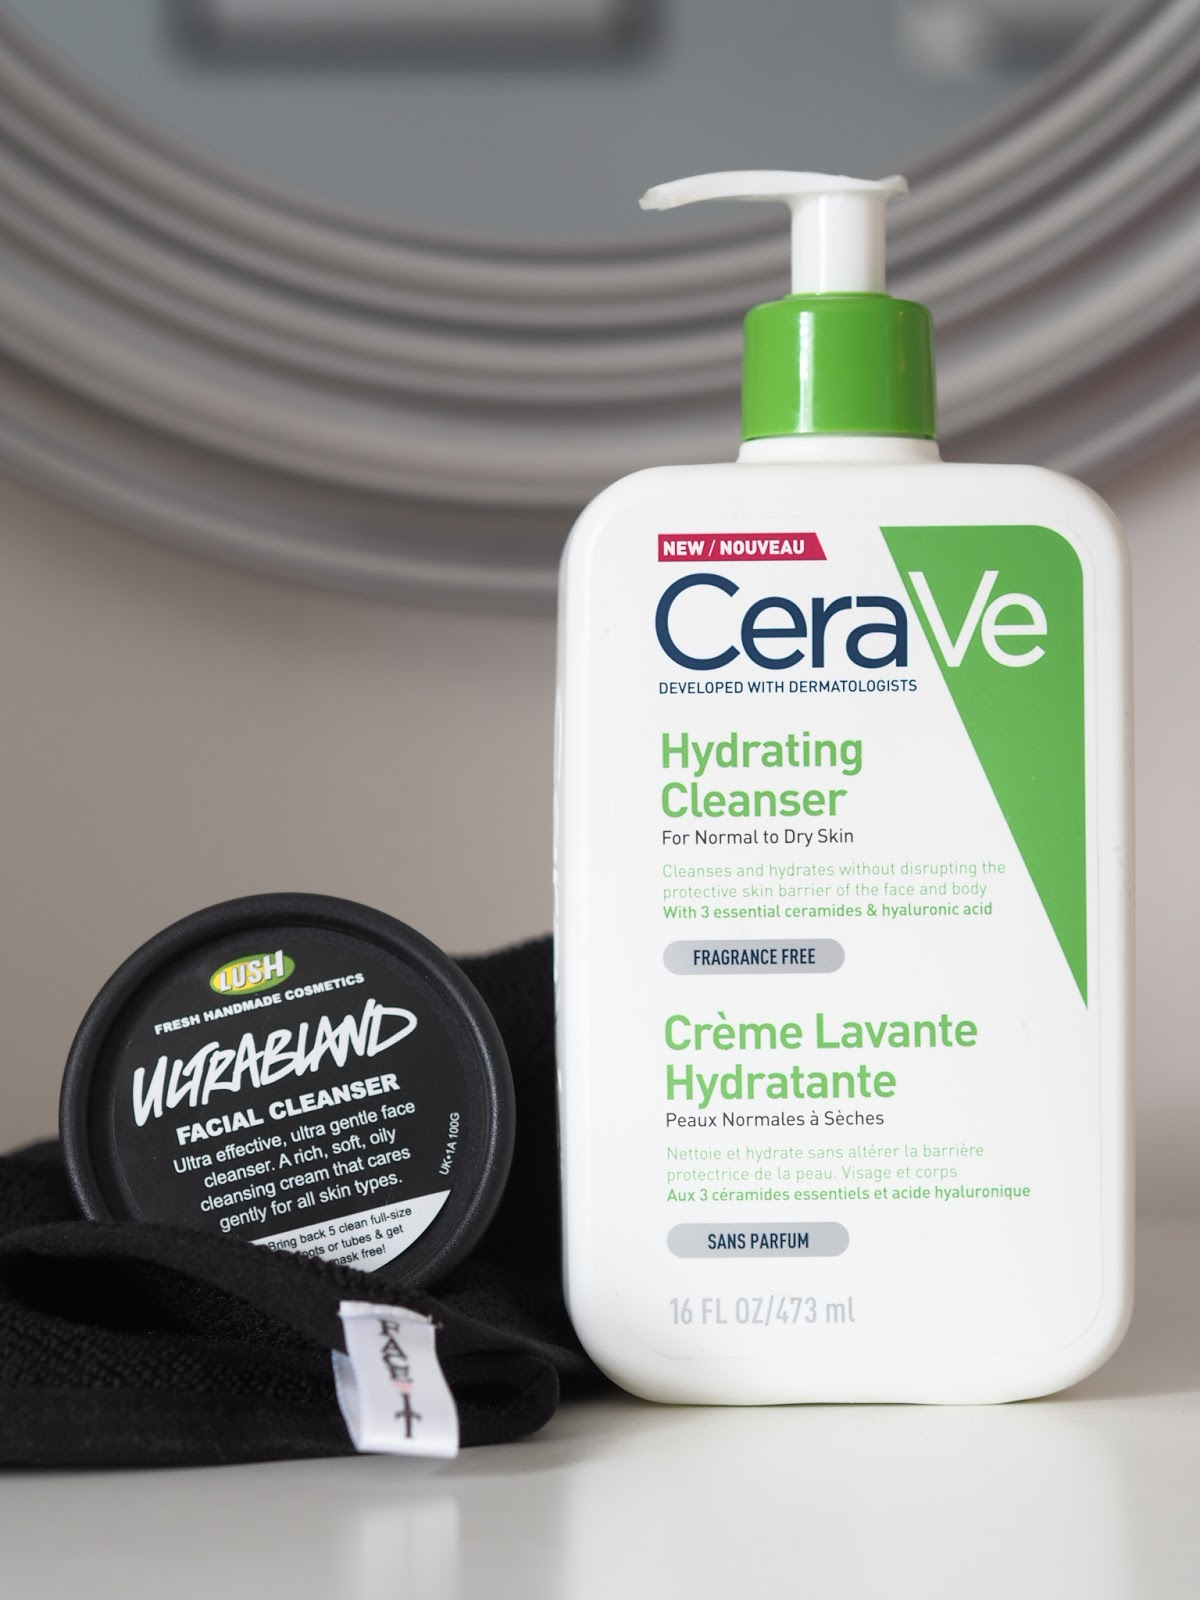 Cerave hydrating cleanser and Ultrabland oil based cleanser from Lush